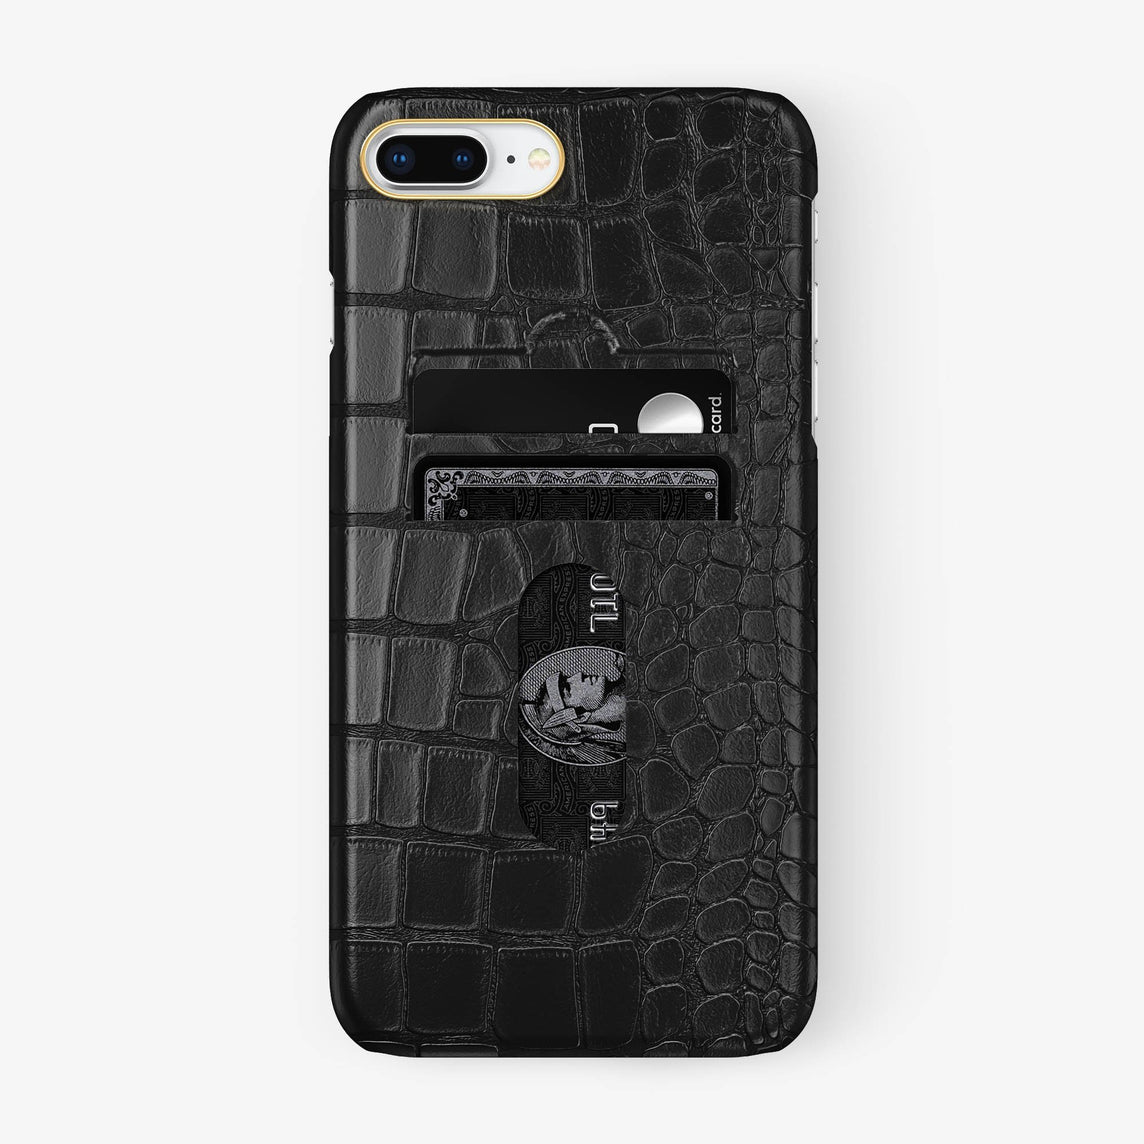 Alligator Card Holder Case iPhone 7/8 Plus | Black - Yellow Gold